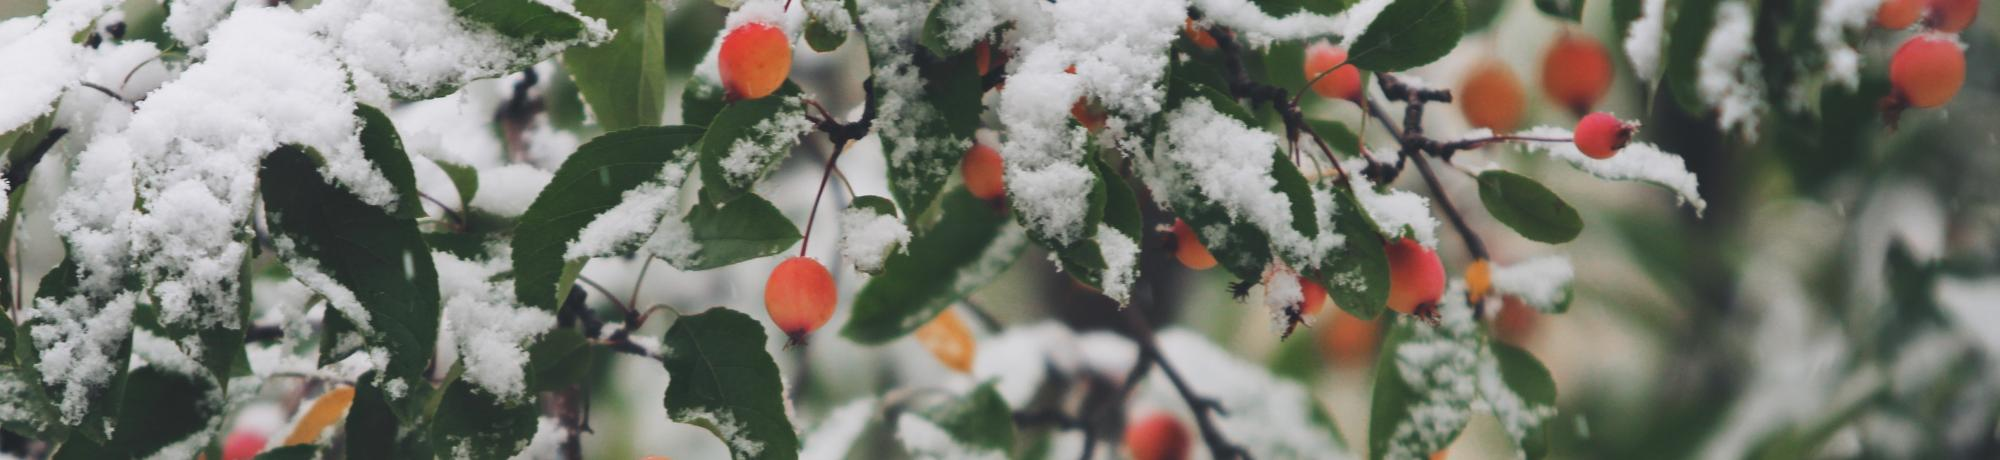 snow capped berries on a treee